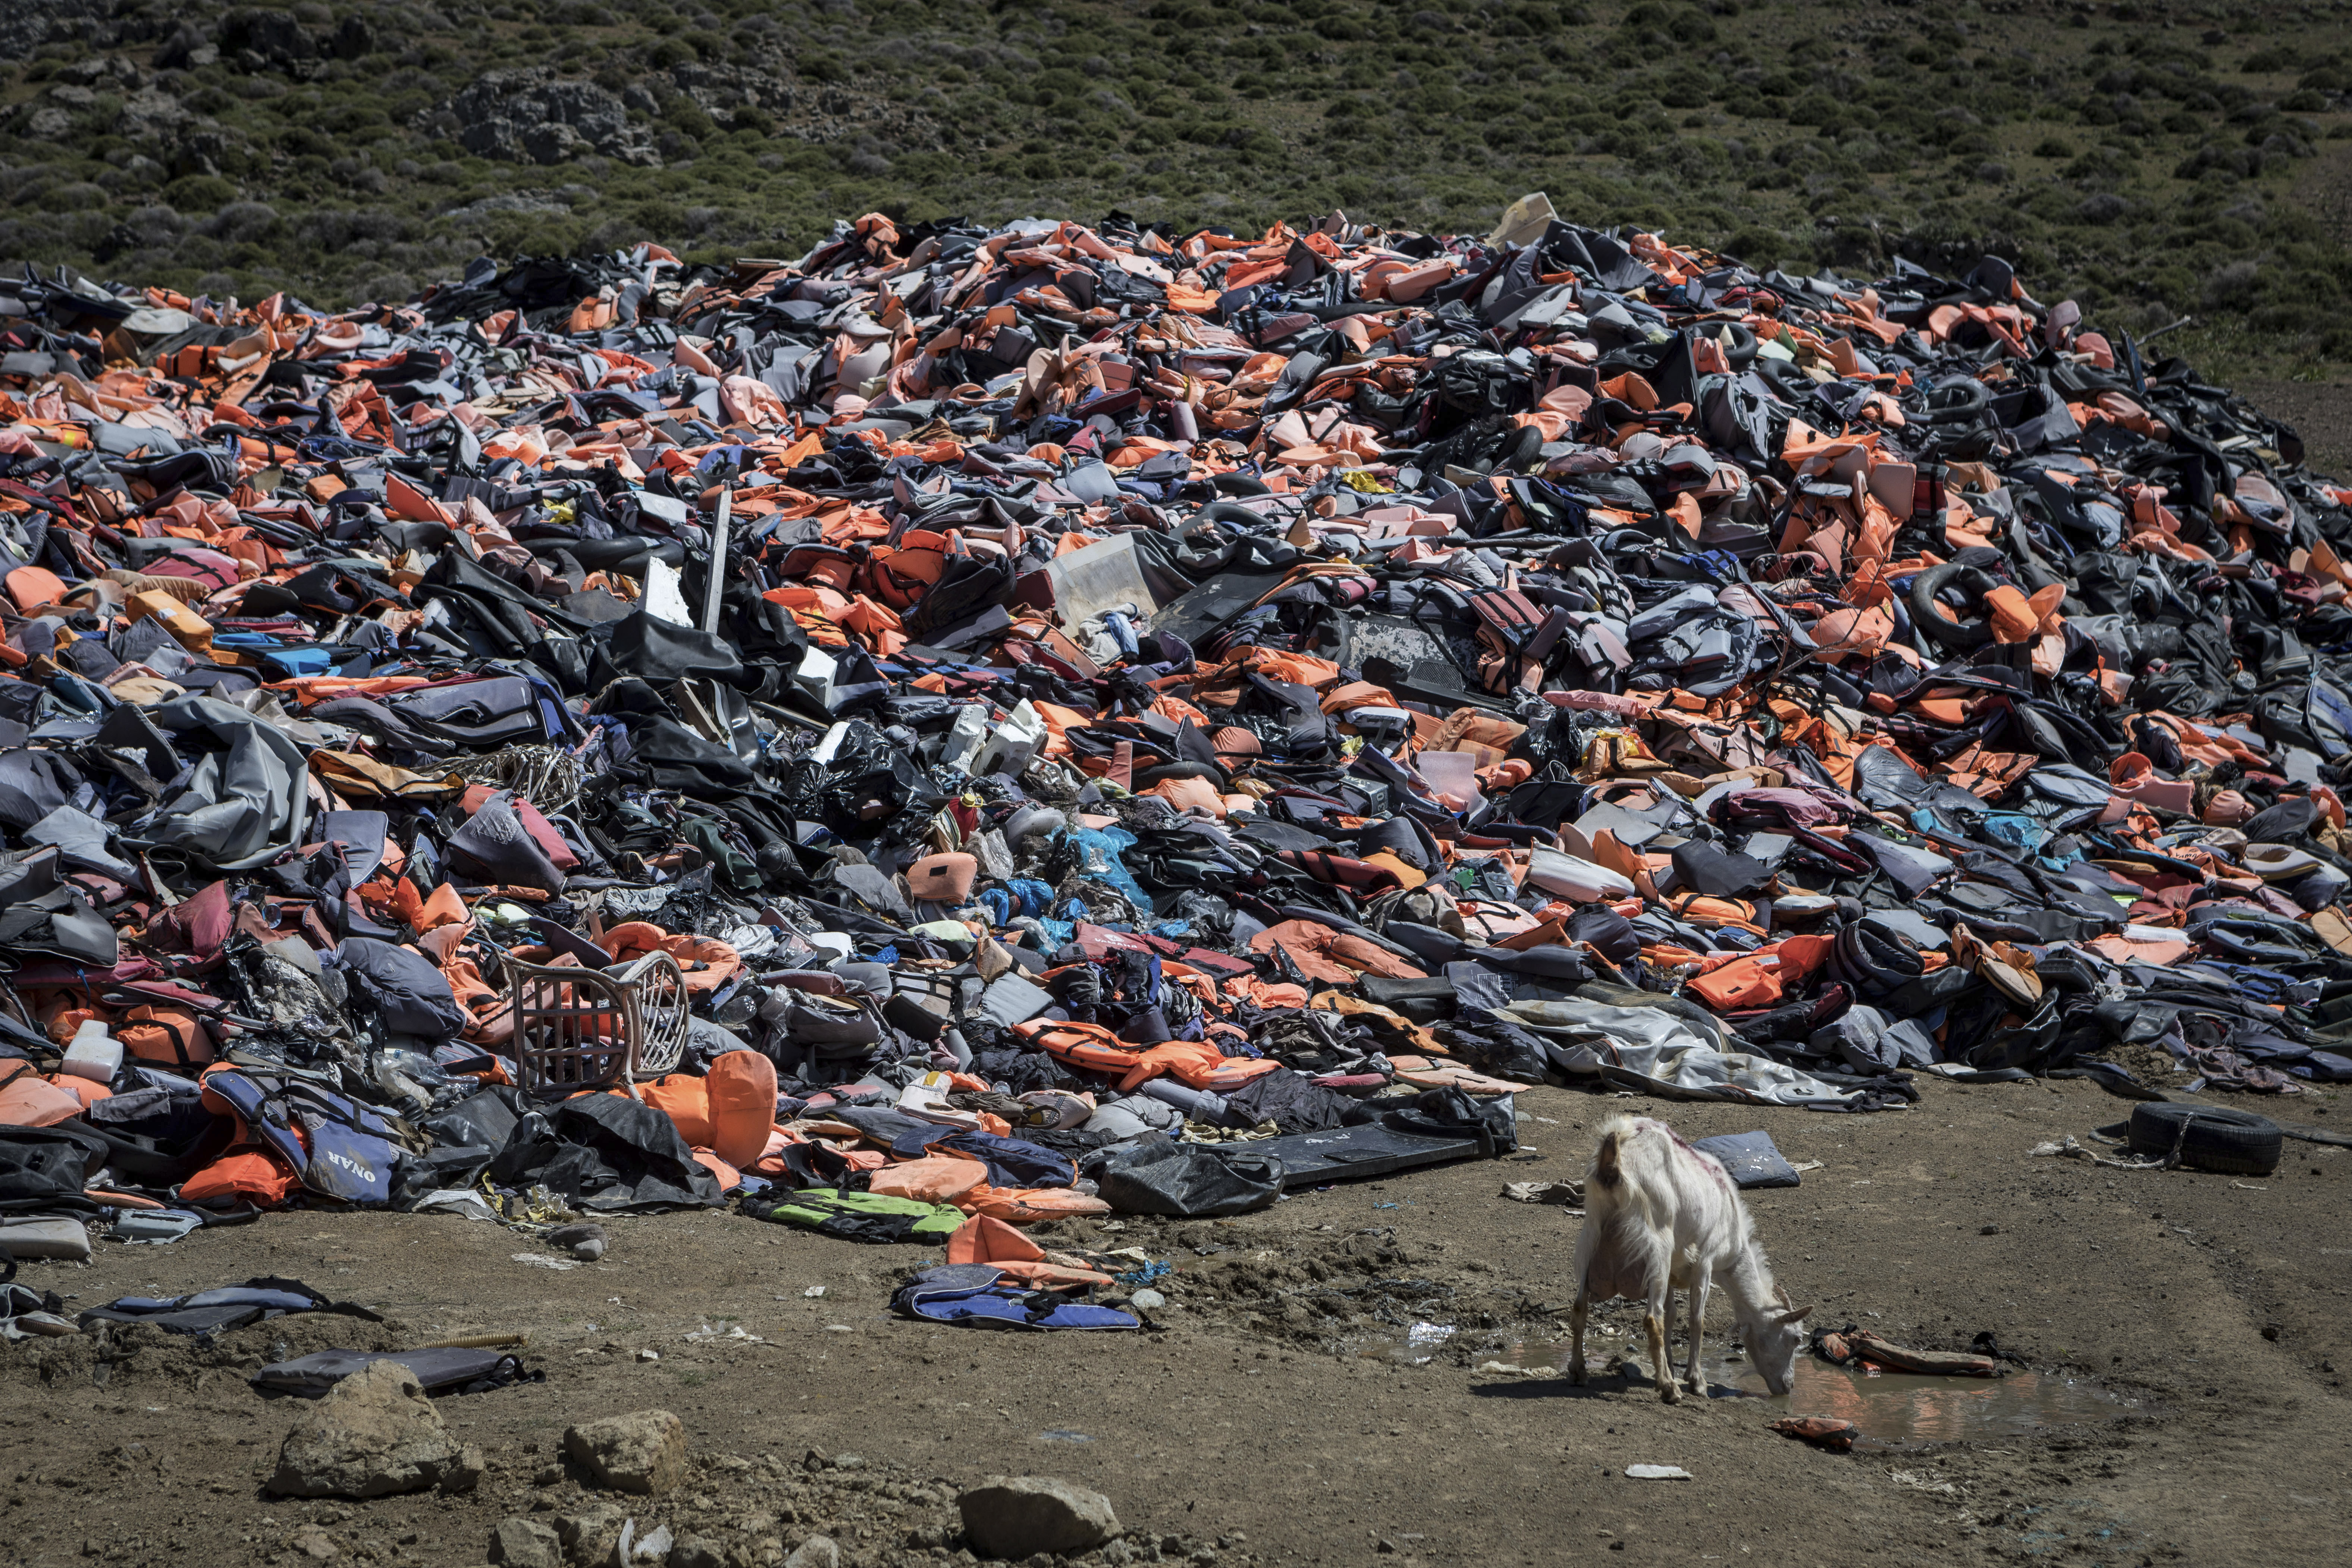 a huge pile of life jackets on a beach -- a goat stands nearby